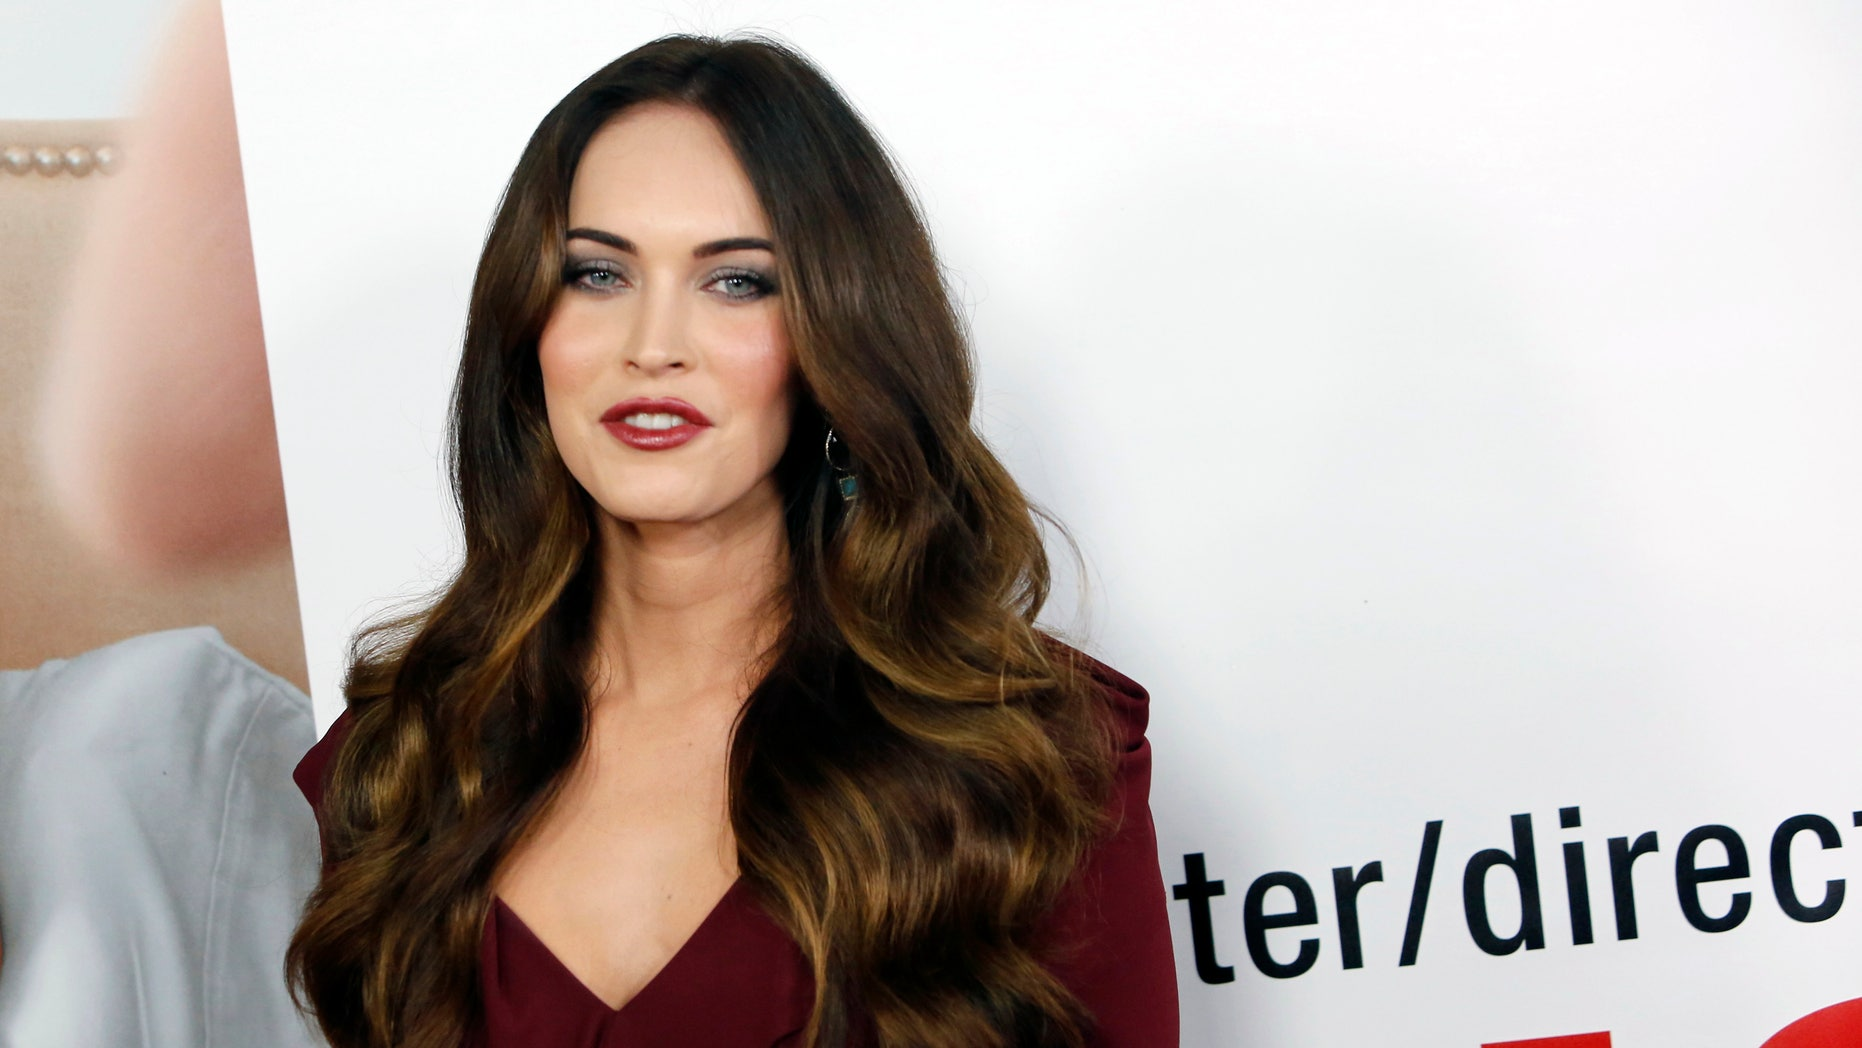 """December 12, 2012. Actress Megan Fox arrives at the premiere of the movie """"This is 40"""" in Hollywood."""